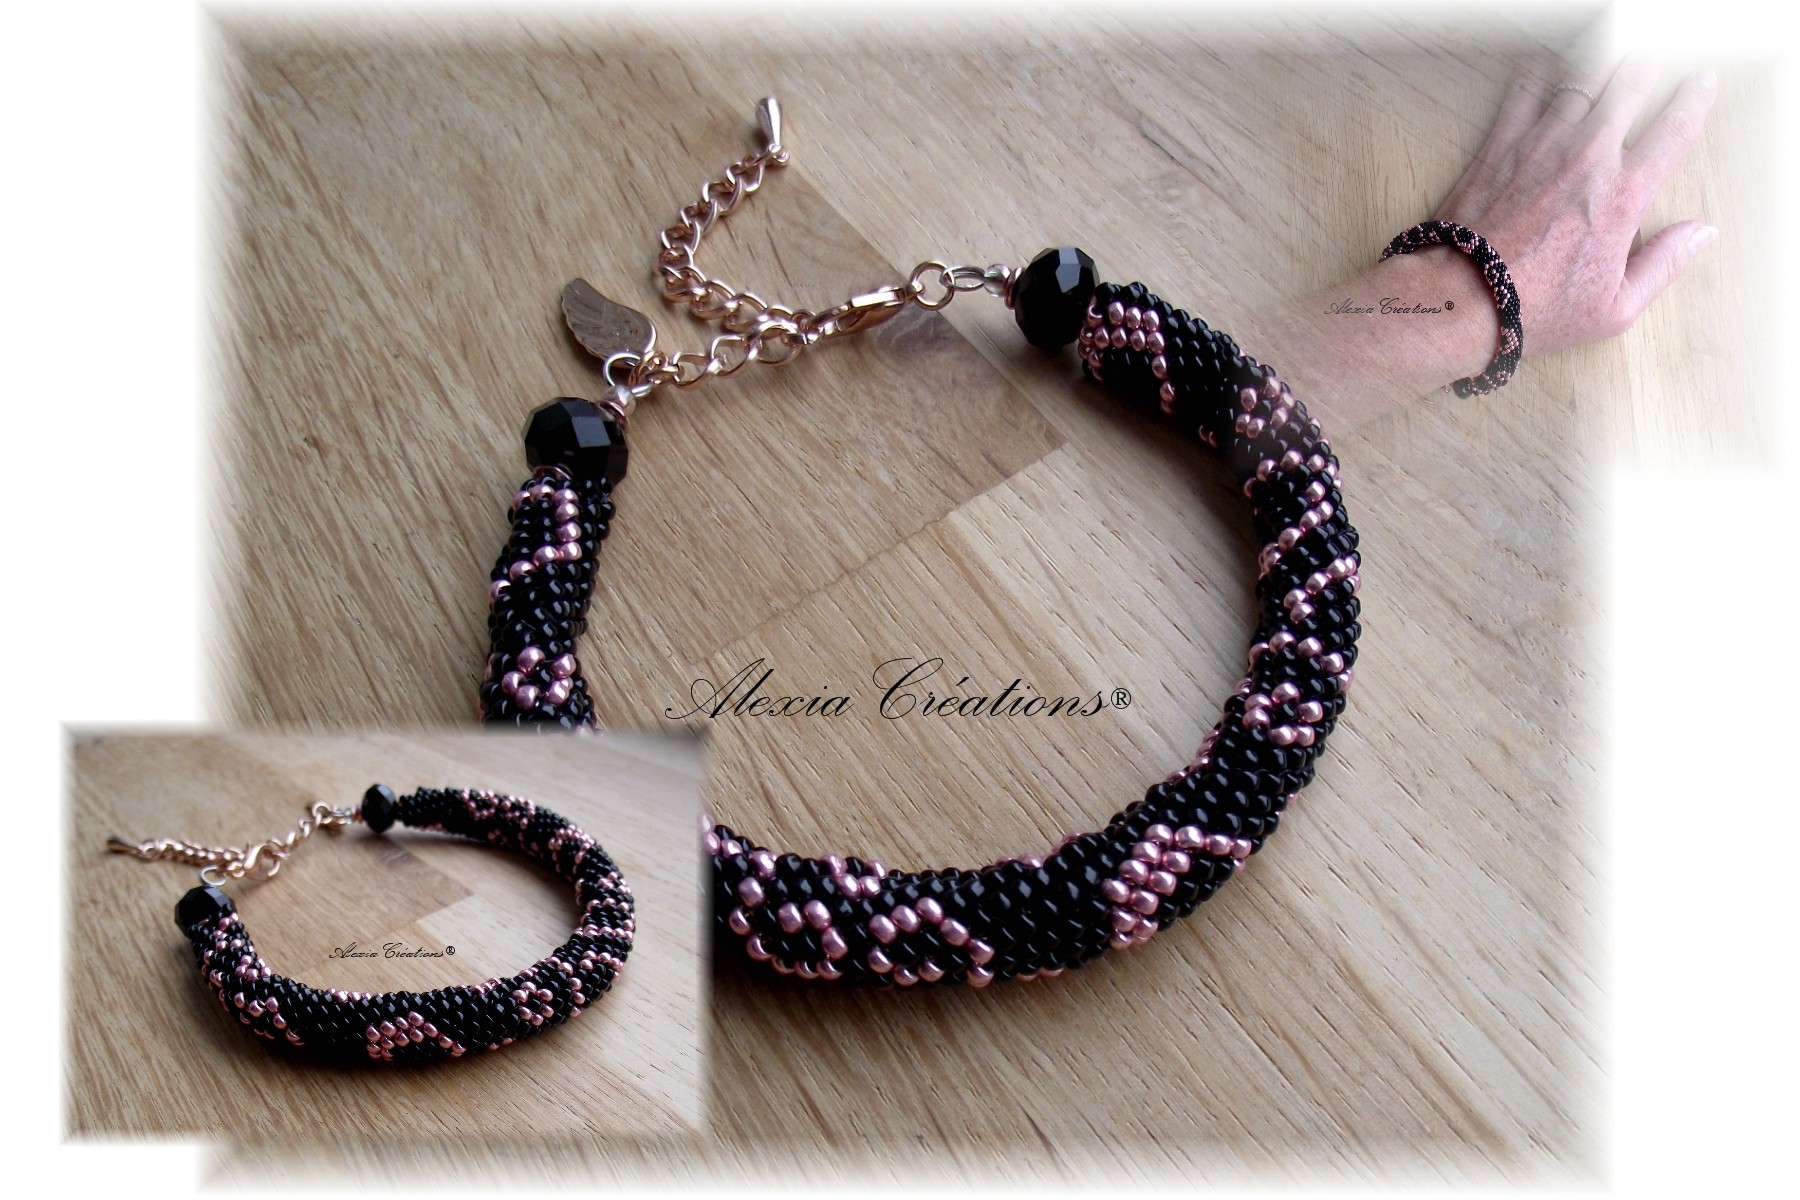 Peyote with a twist - Not crochet. Bracelet noir et rose gold